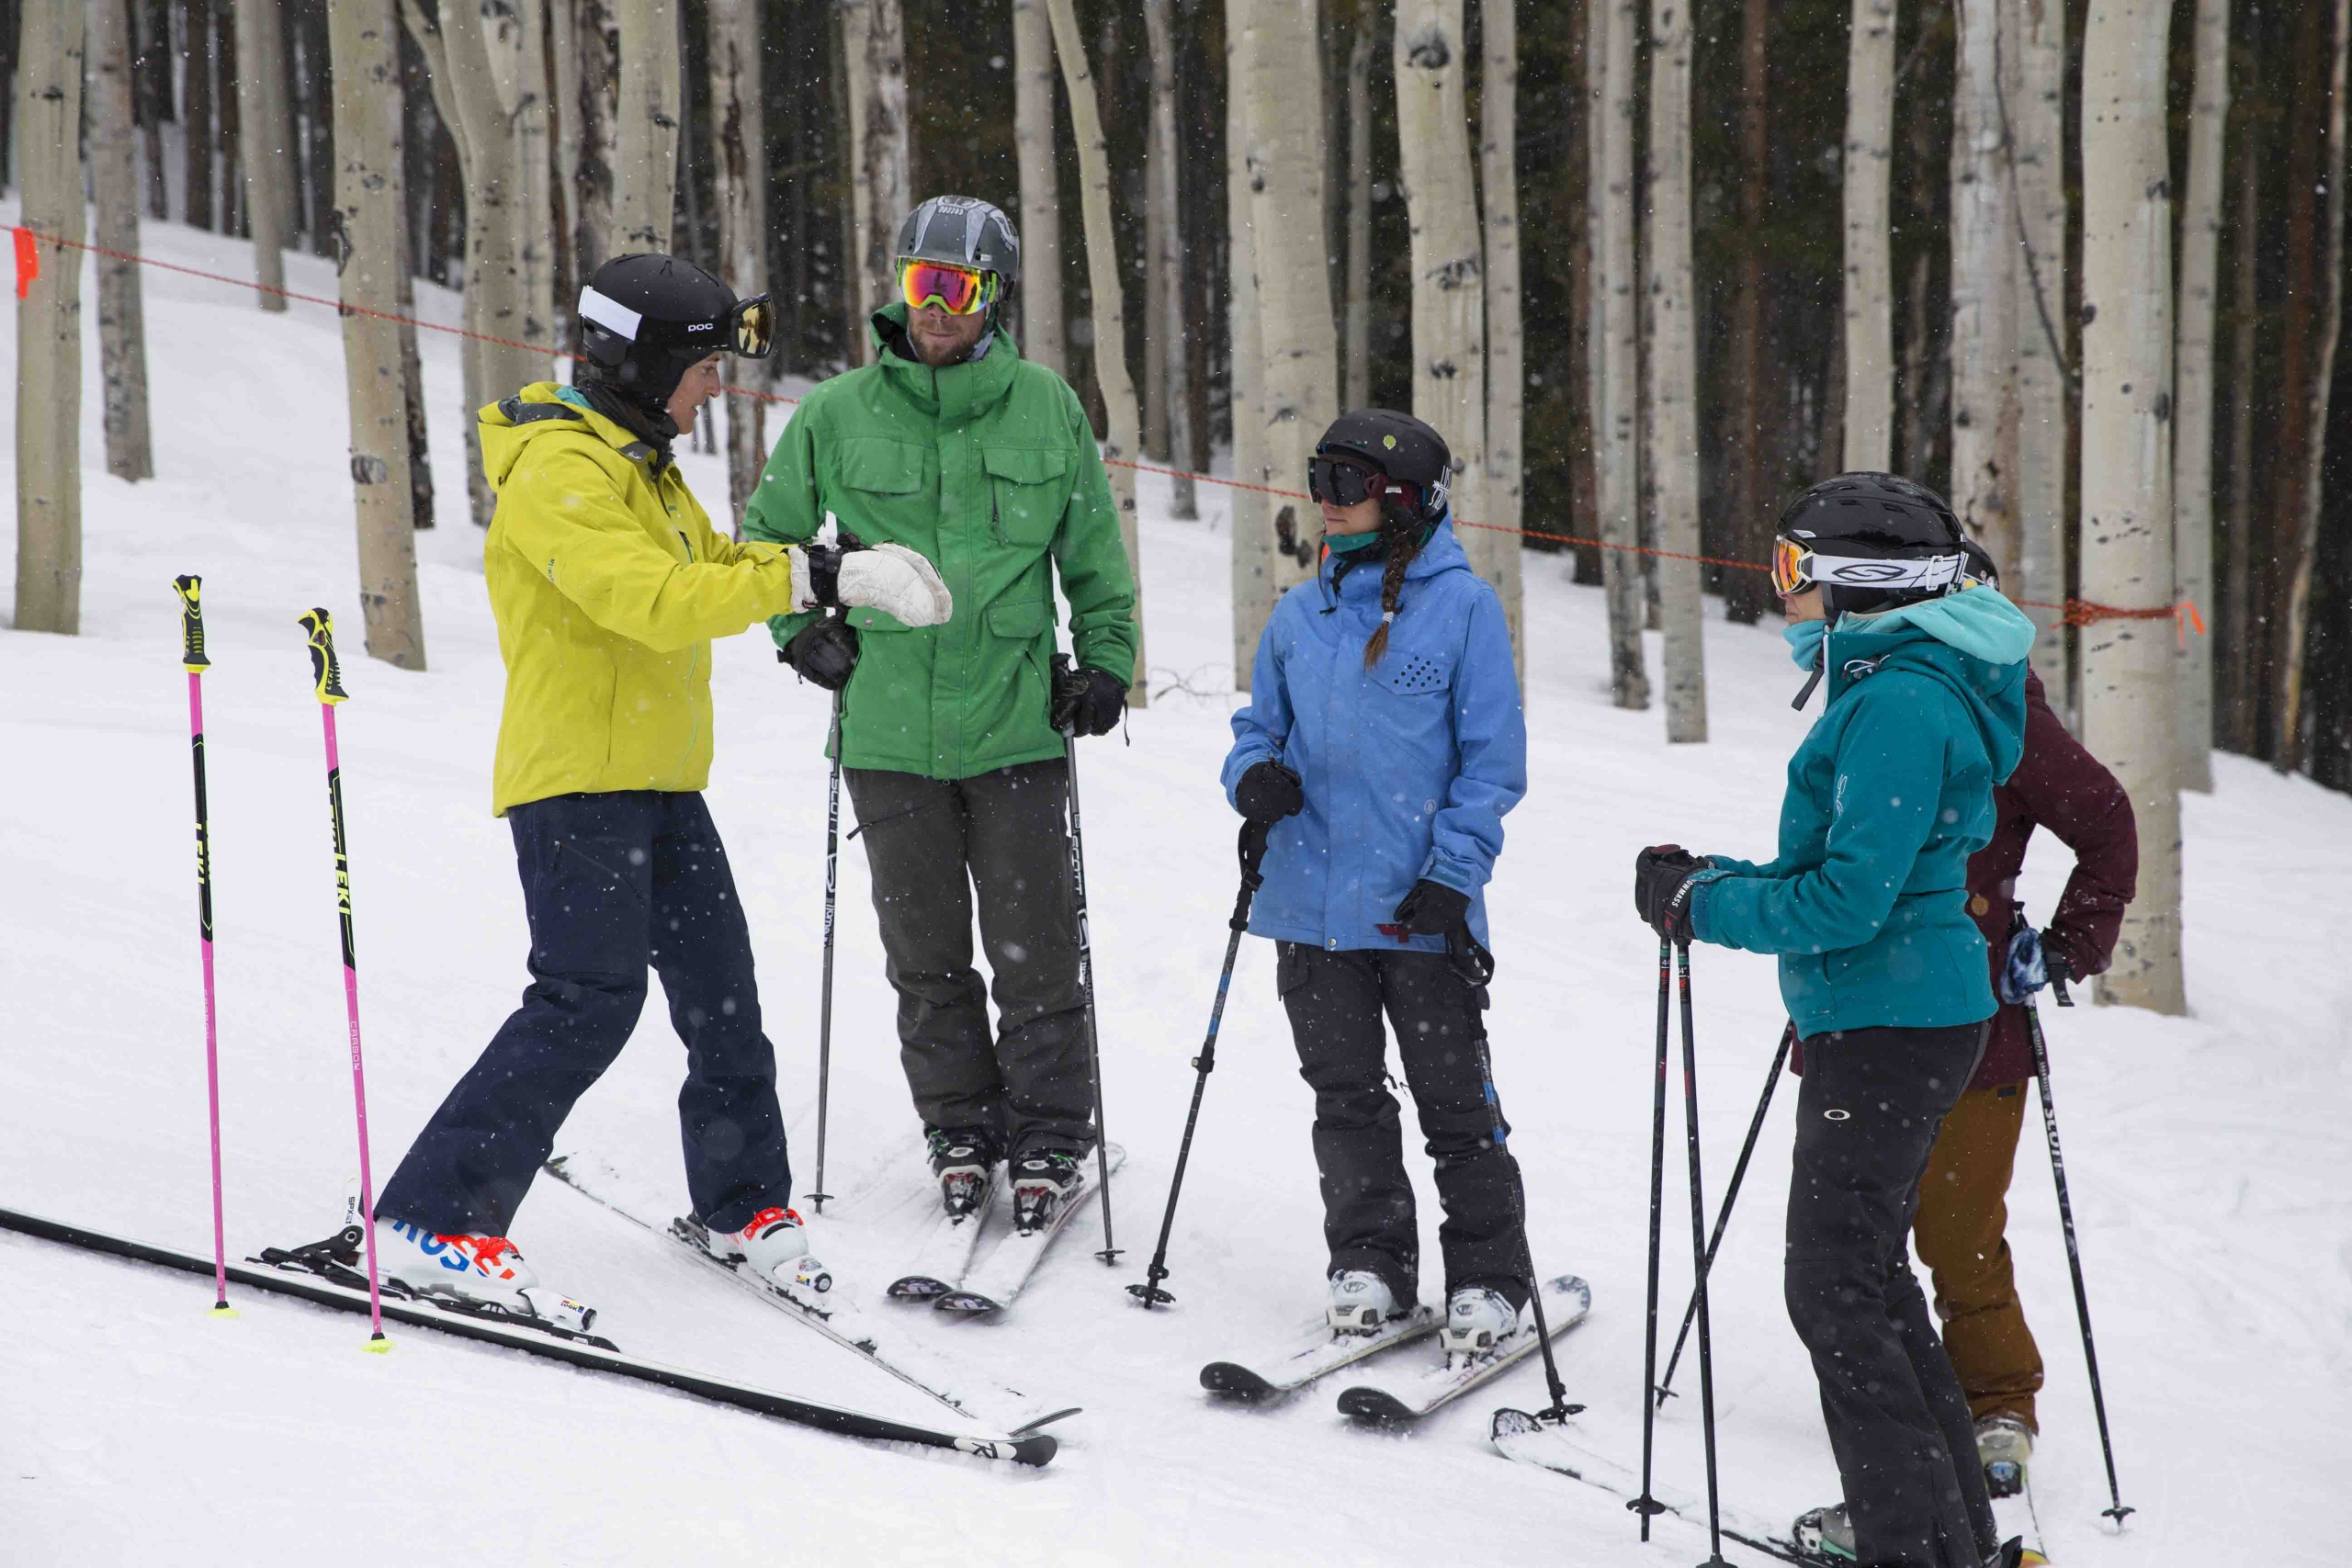 An alpine instructor gives a lesson to a group of three students on the hill